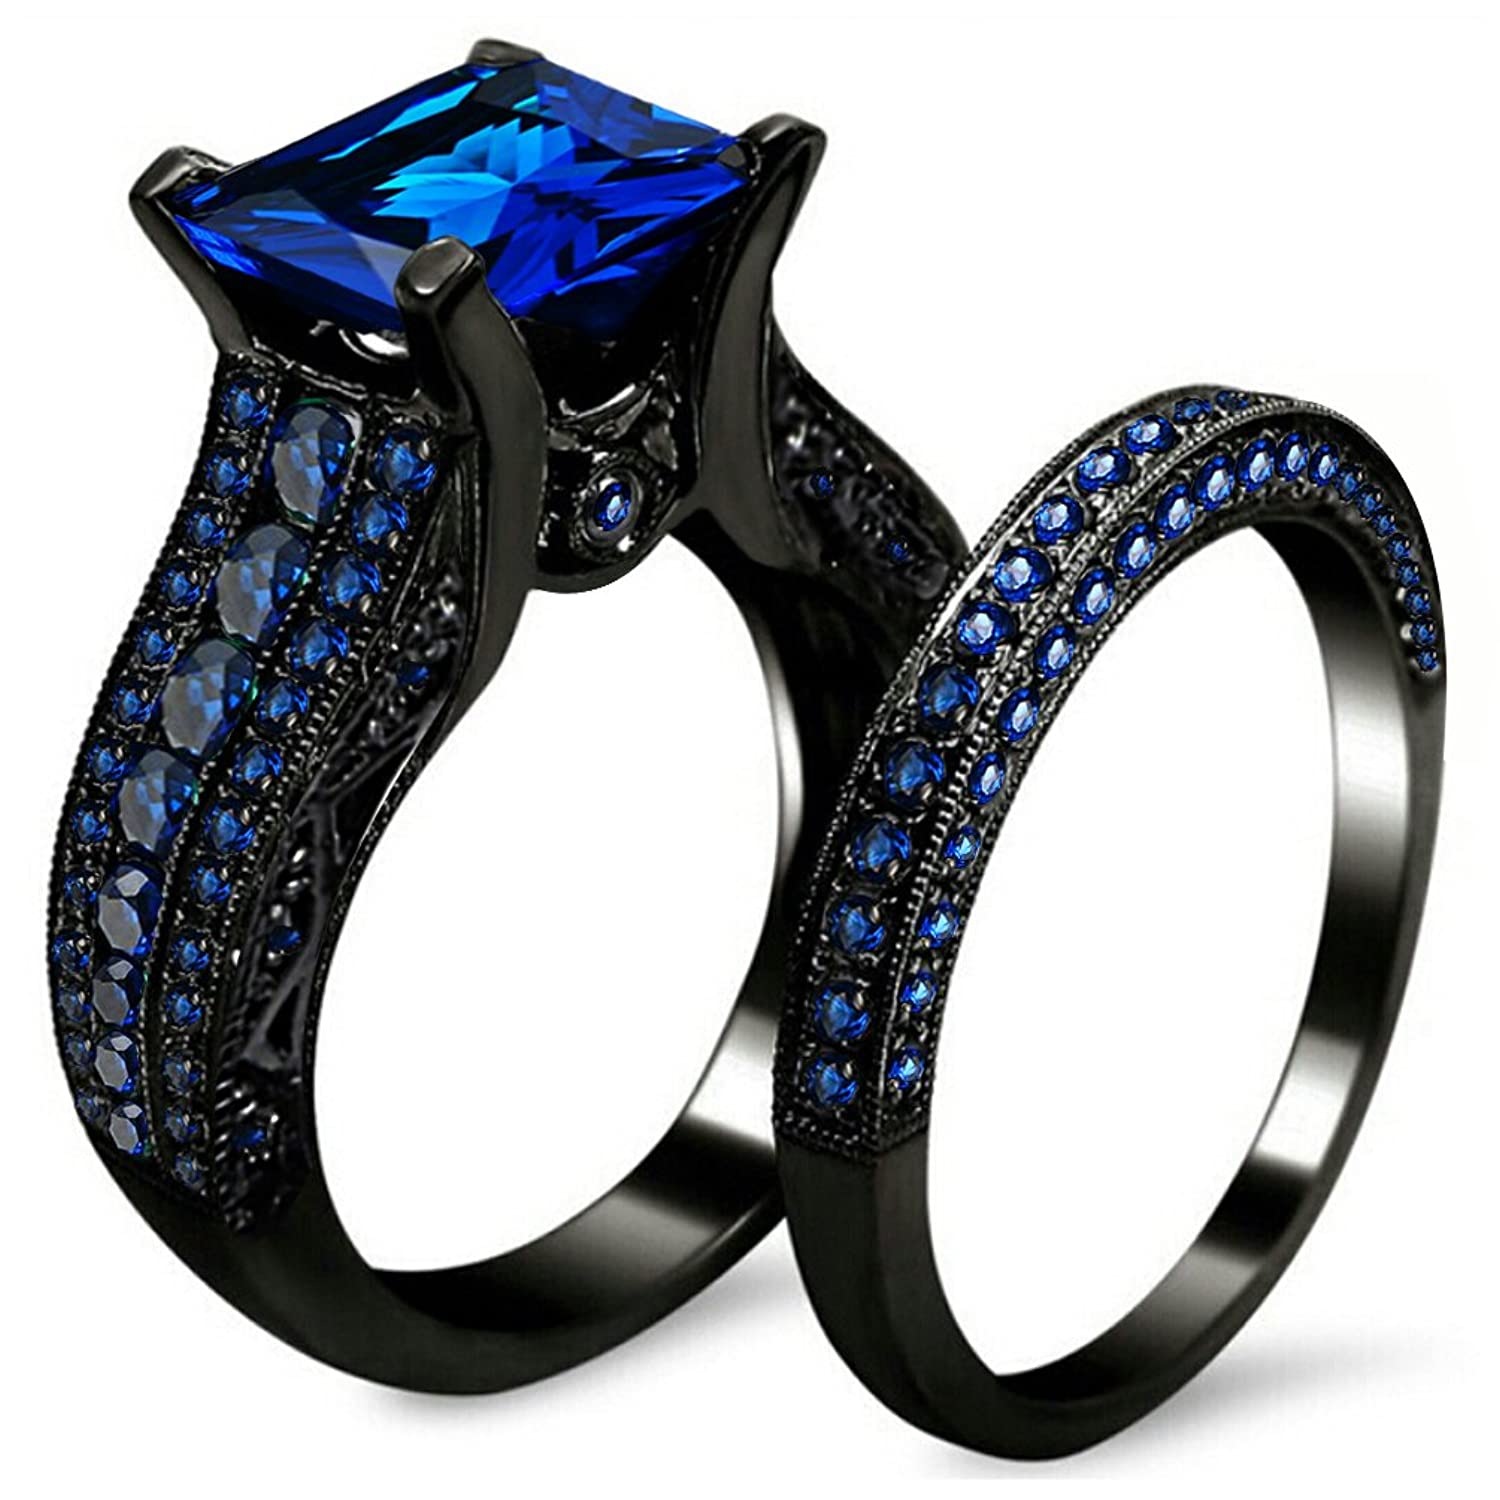 you recognize this engagement world is rings sapphire classic center piece velvety of deep which for famous blue s stones the royal ring alternative most may from stone